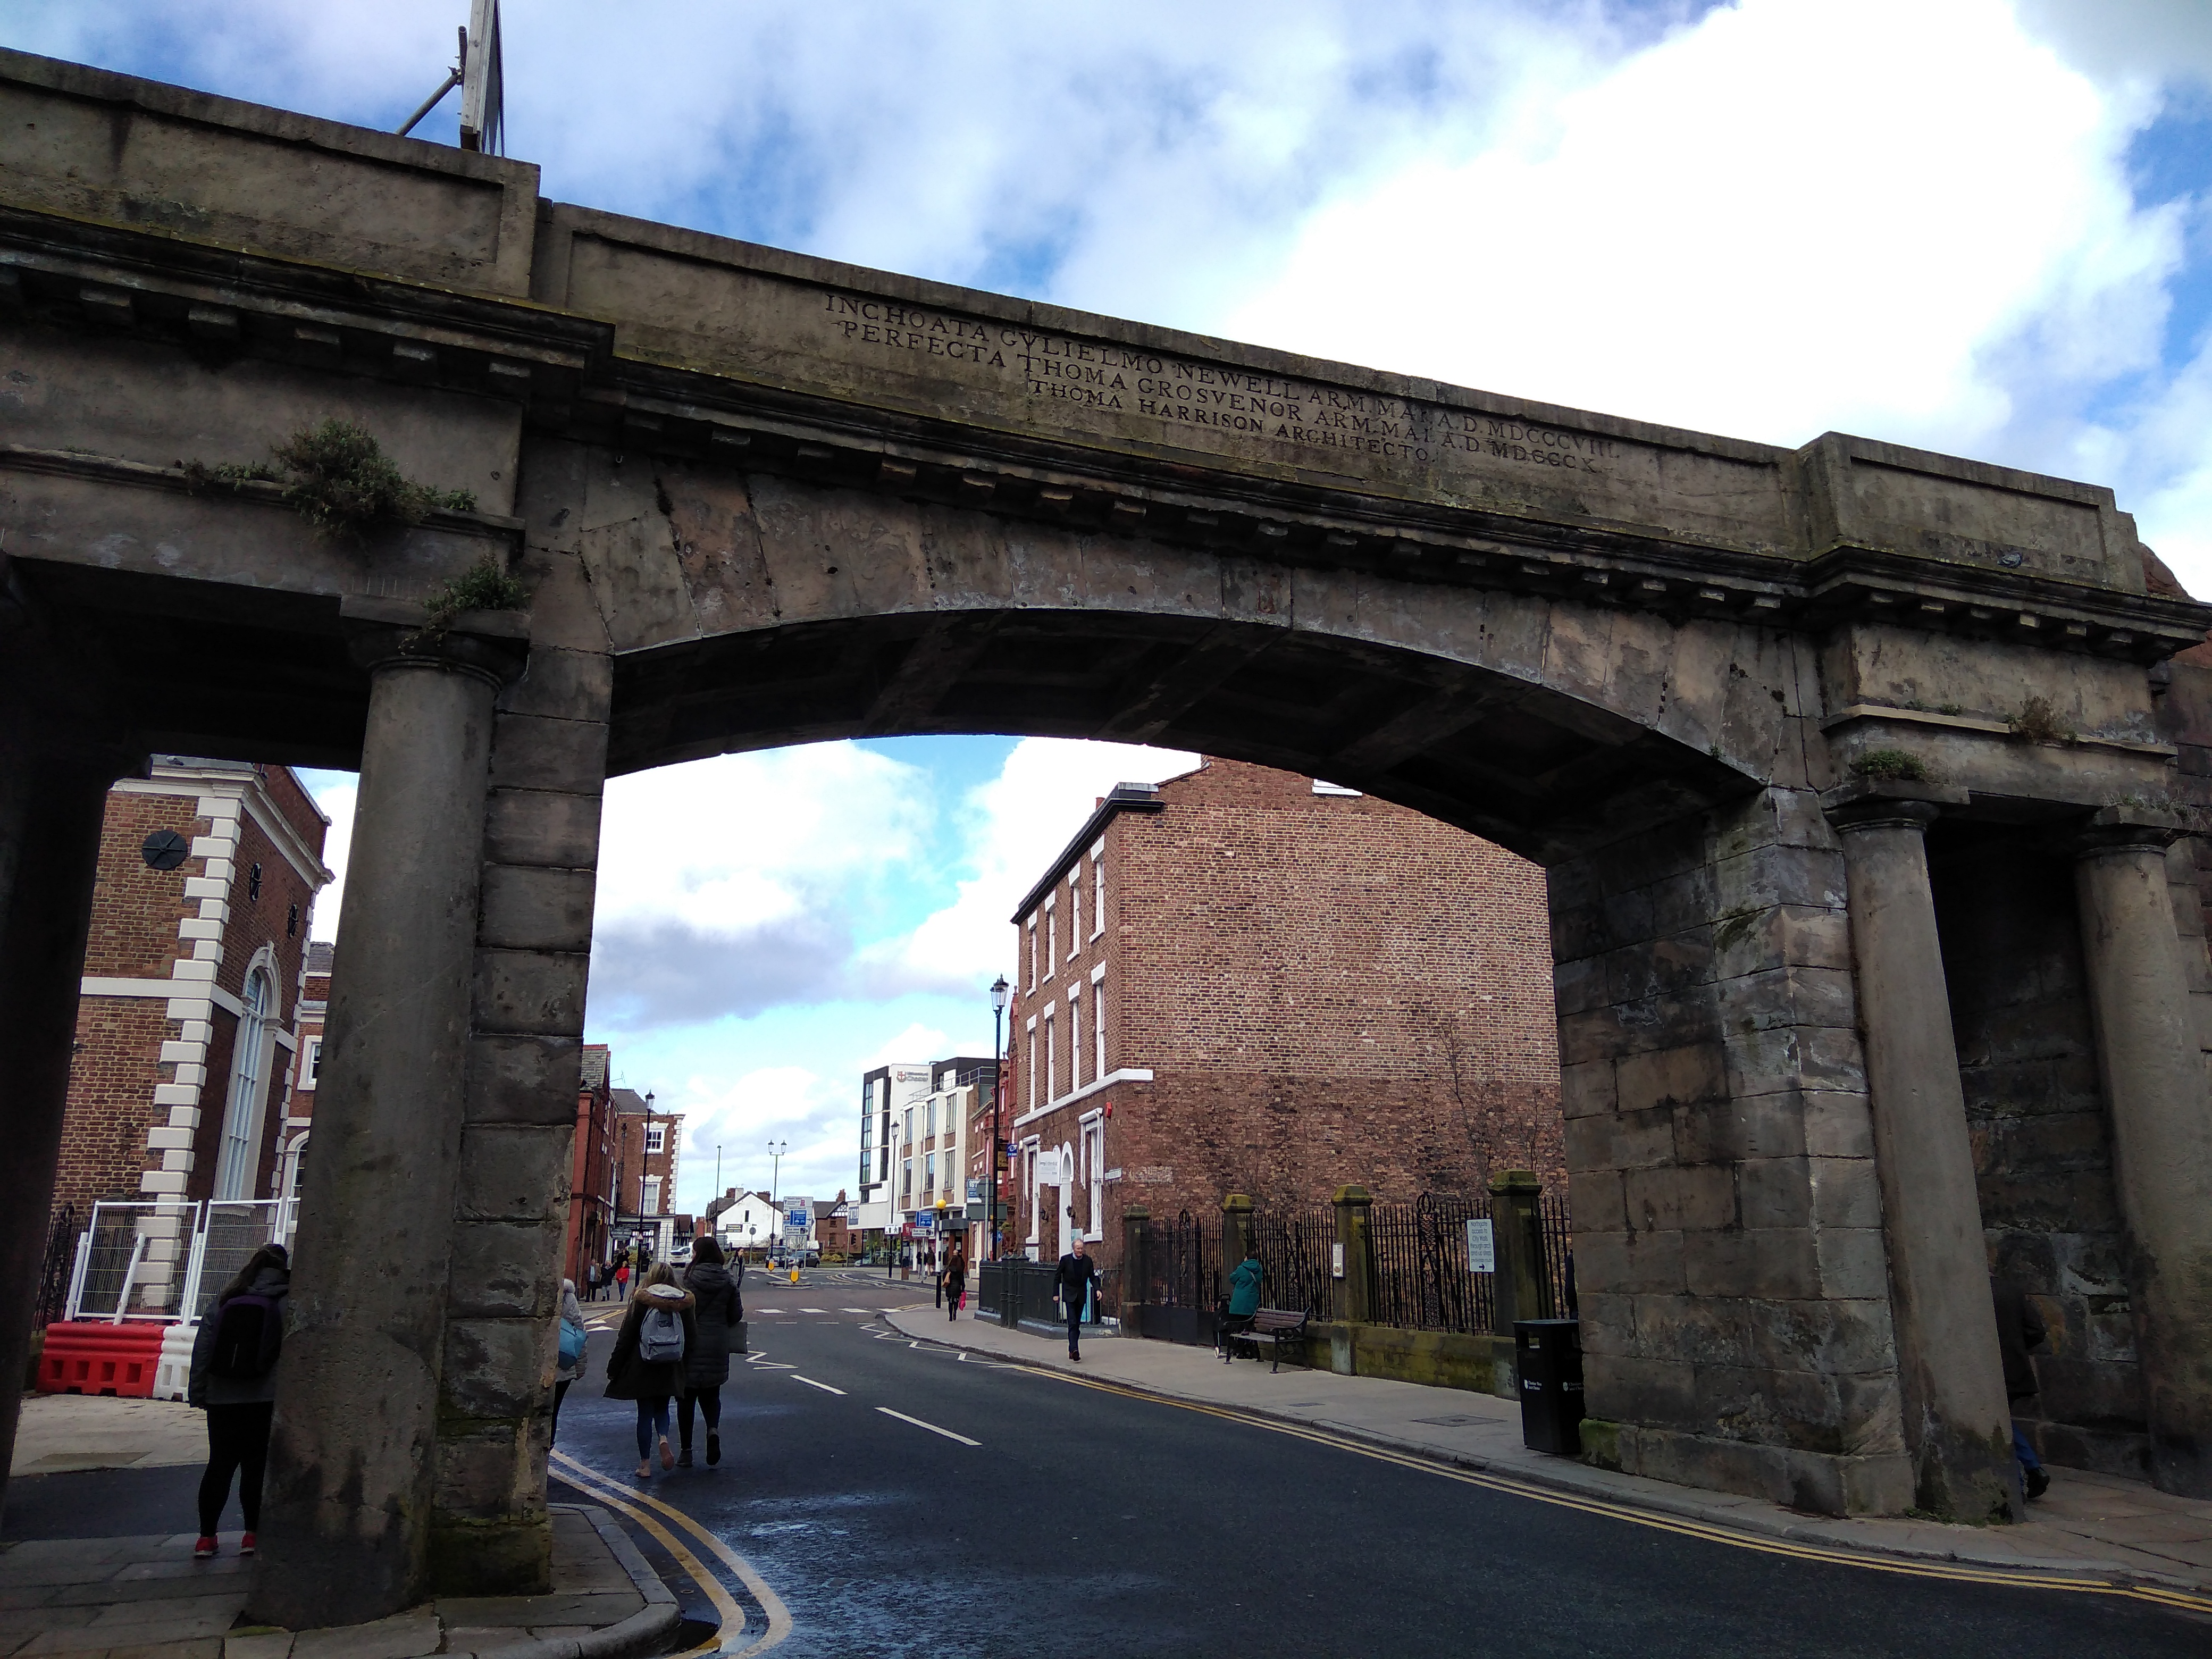 chester roman amphitheatre, chester, roman fort, chesters clock, roman city walls chester, explore chester, things to do in chester, chester high cross, britains oldest shopping arcade. black and white buildings of chester, domesday book town, chester city walls, river dee